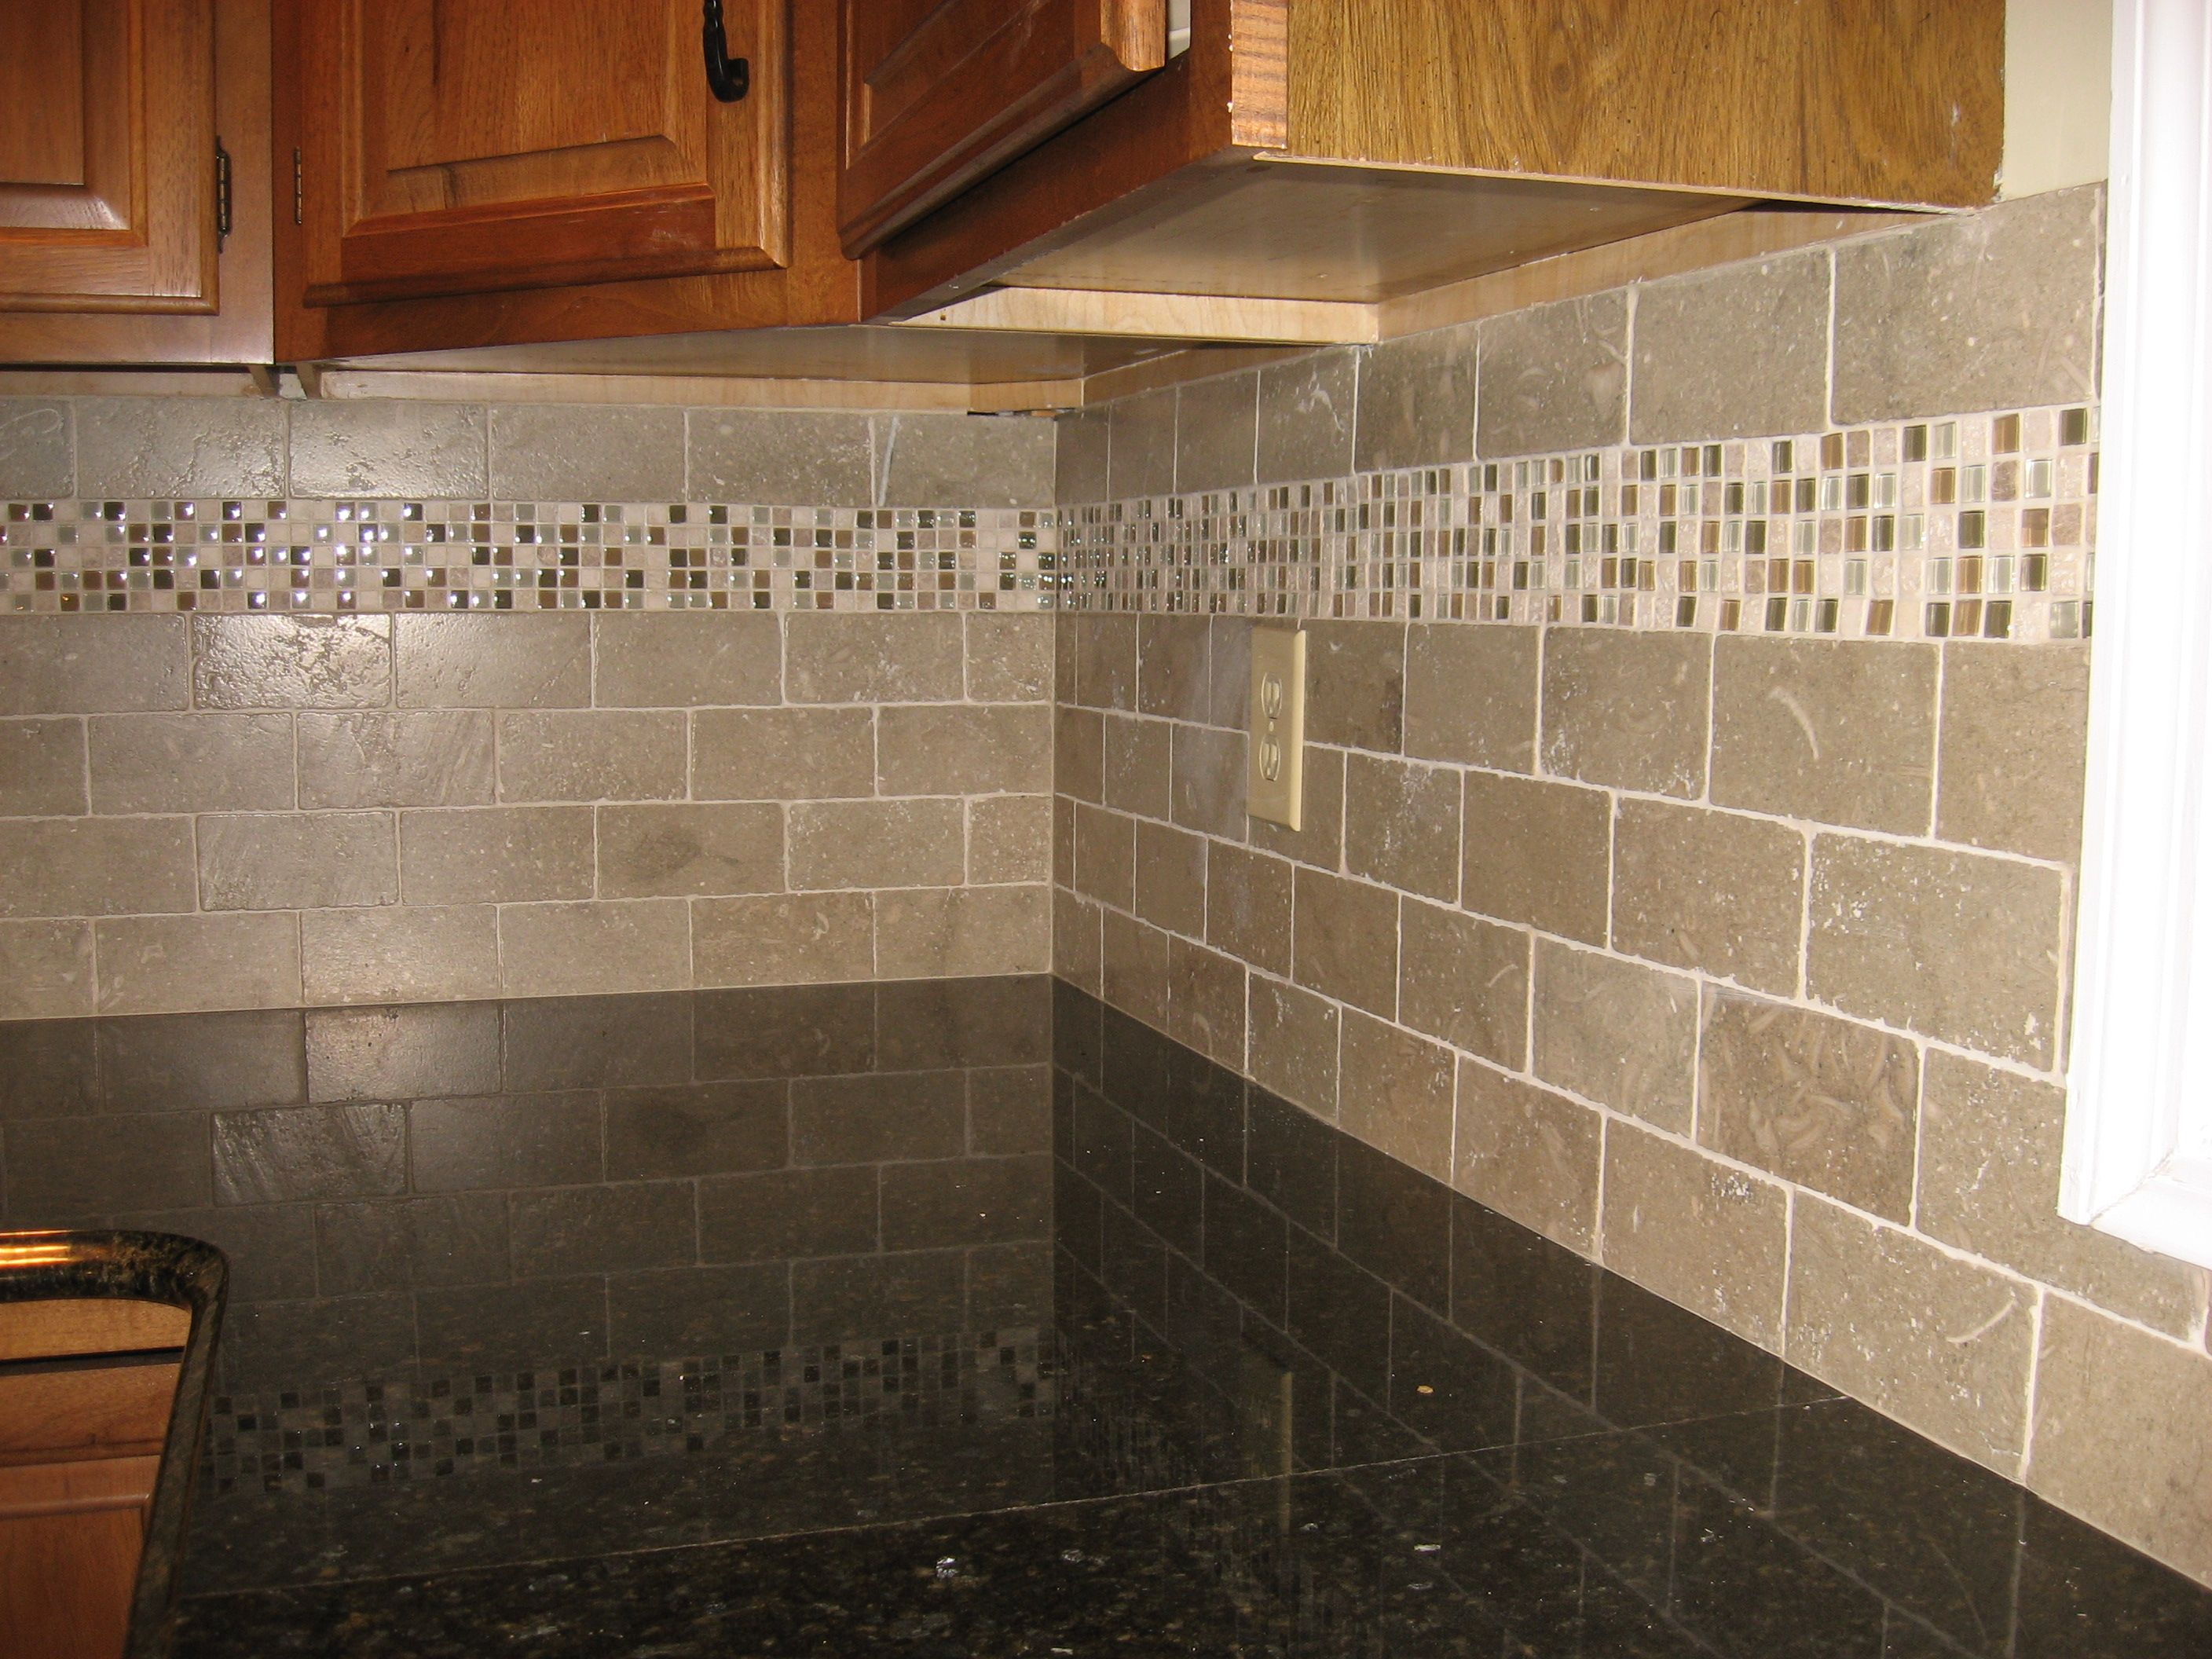 Gentil Subway Tiles With Mosaic Accents | ... Backsplash With Tumbled Limestone  Subway Tile And Mixed Mosaic Accent